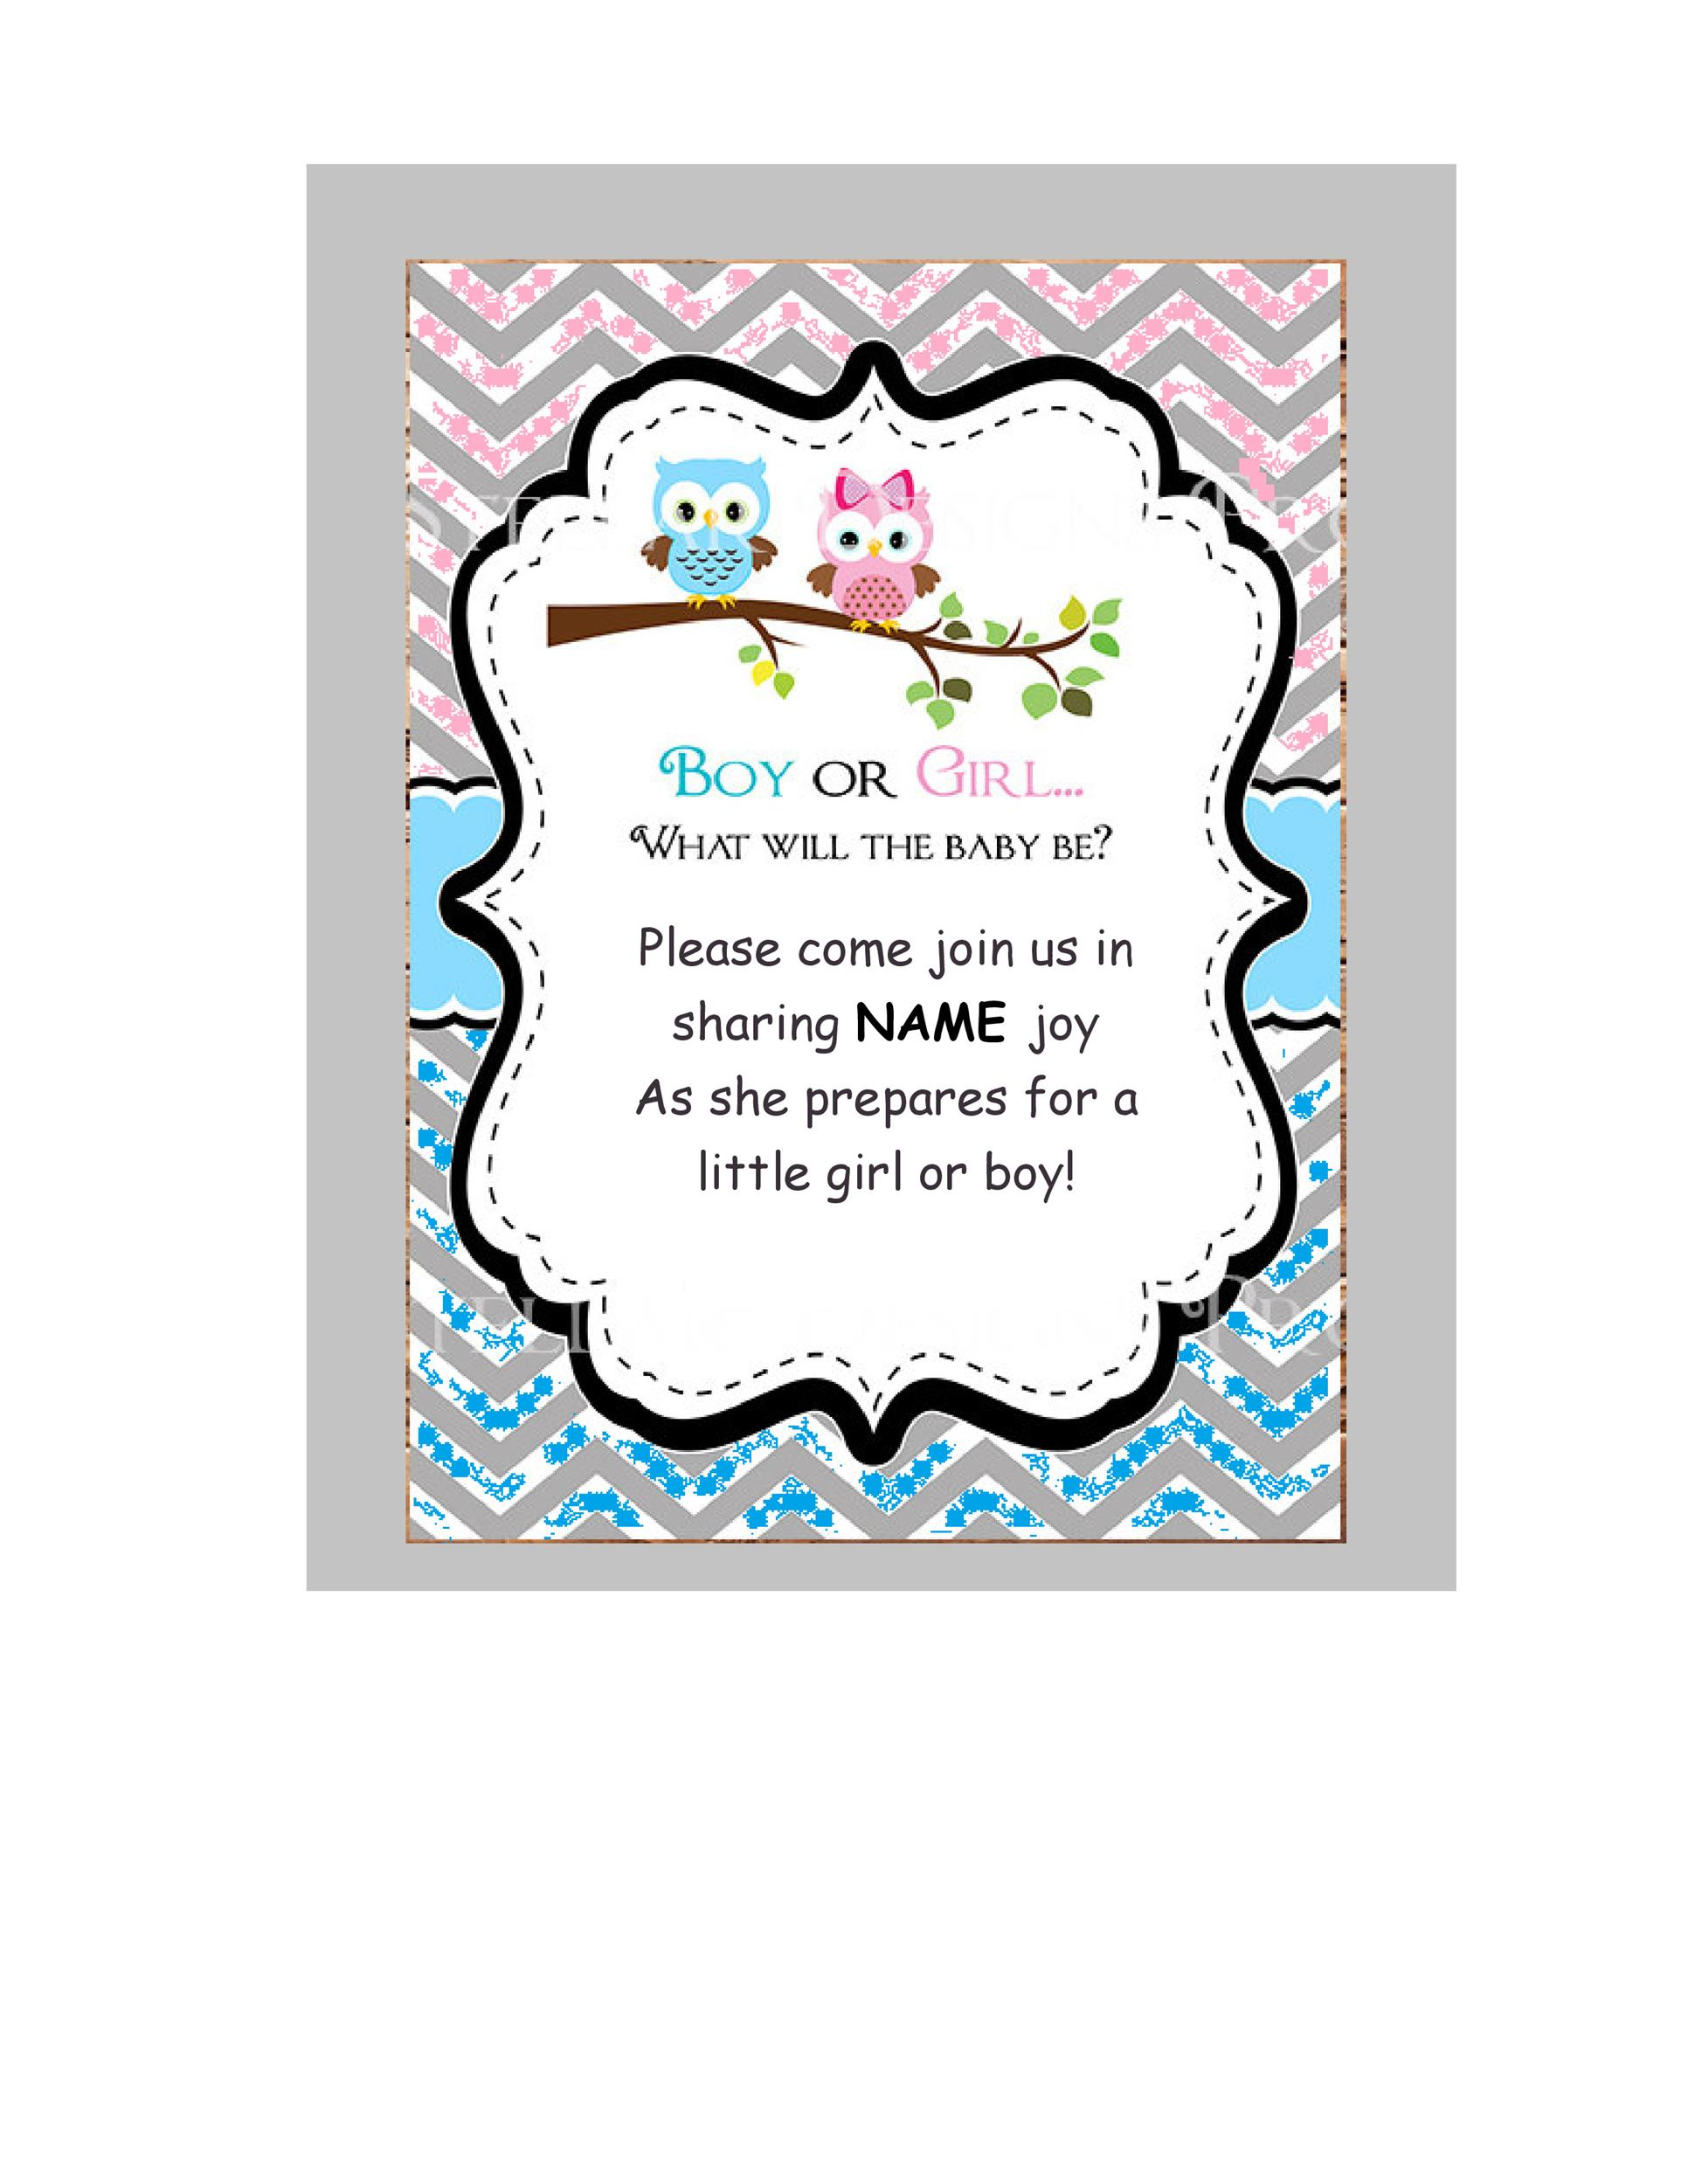 photograph about Printable Gender Reveal Invitations identify 17 Cost-free Gender Demonstrate Invitation Templates ᐅ Template Lab